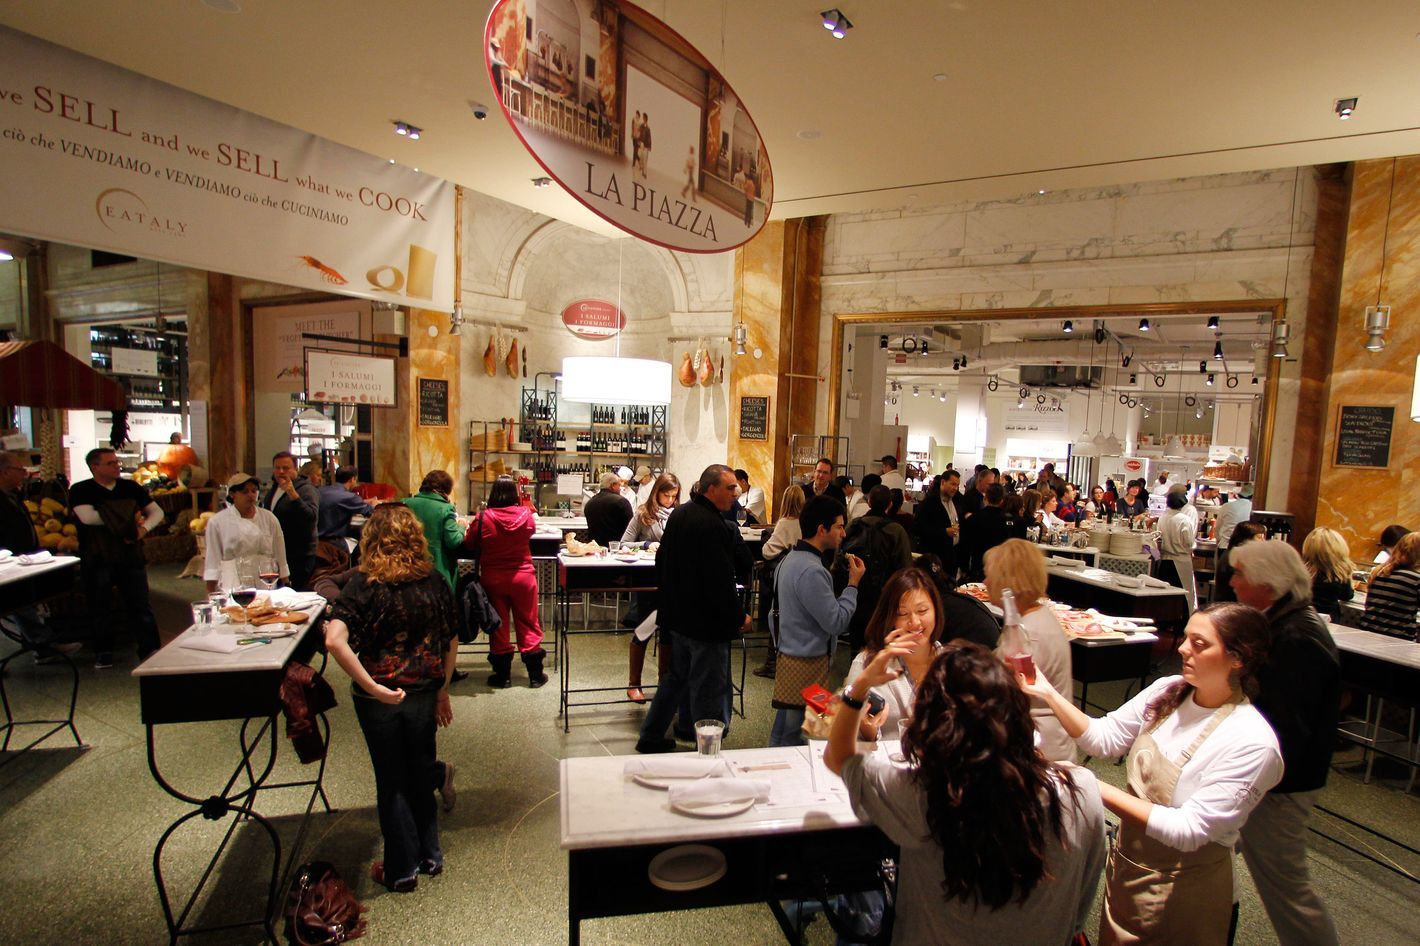 New York\'s Second Eataly Location Has an Opening Date